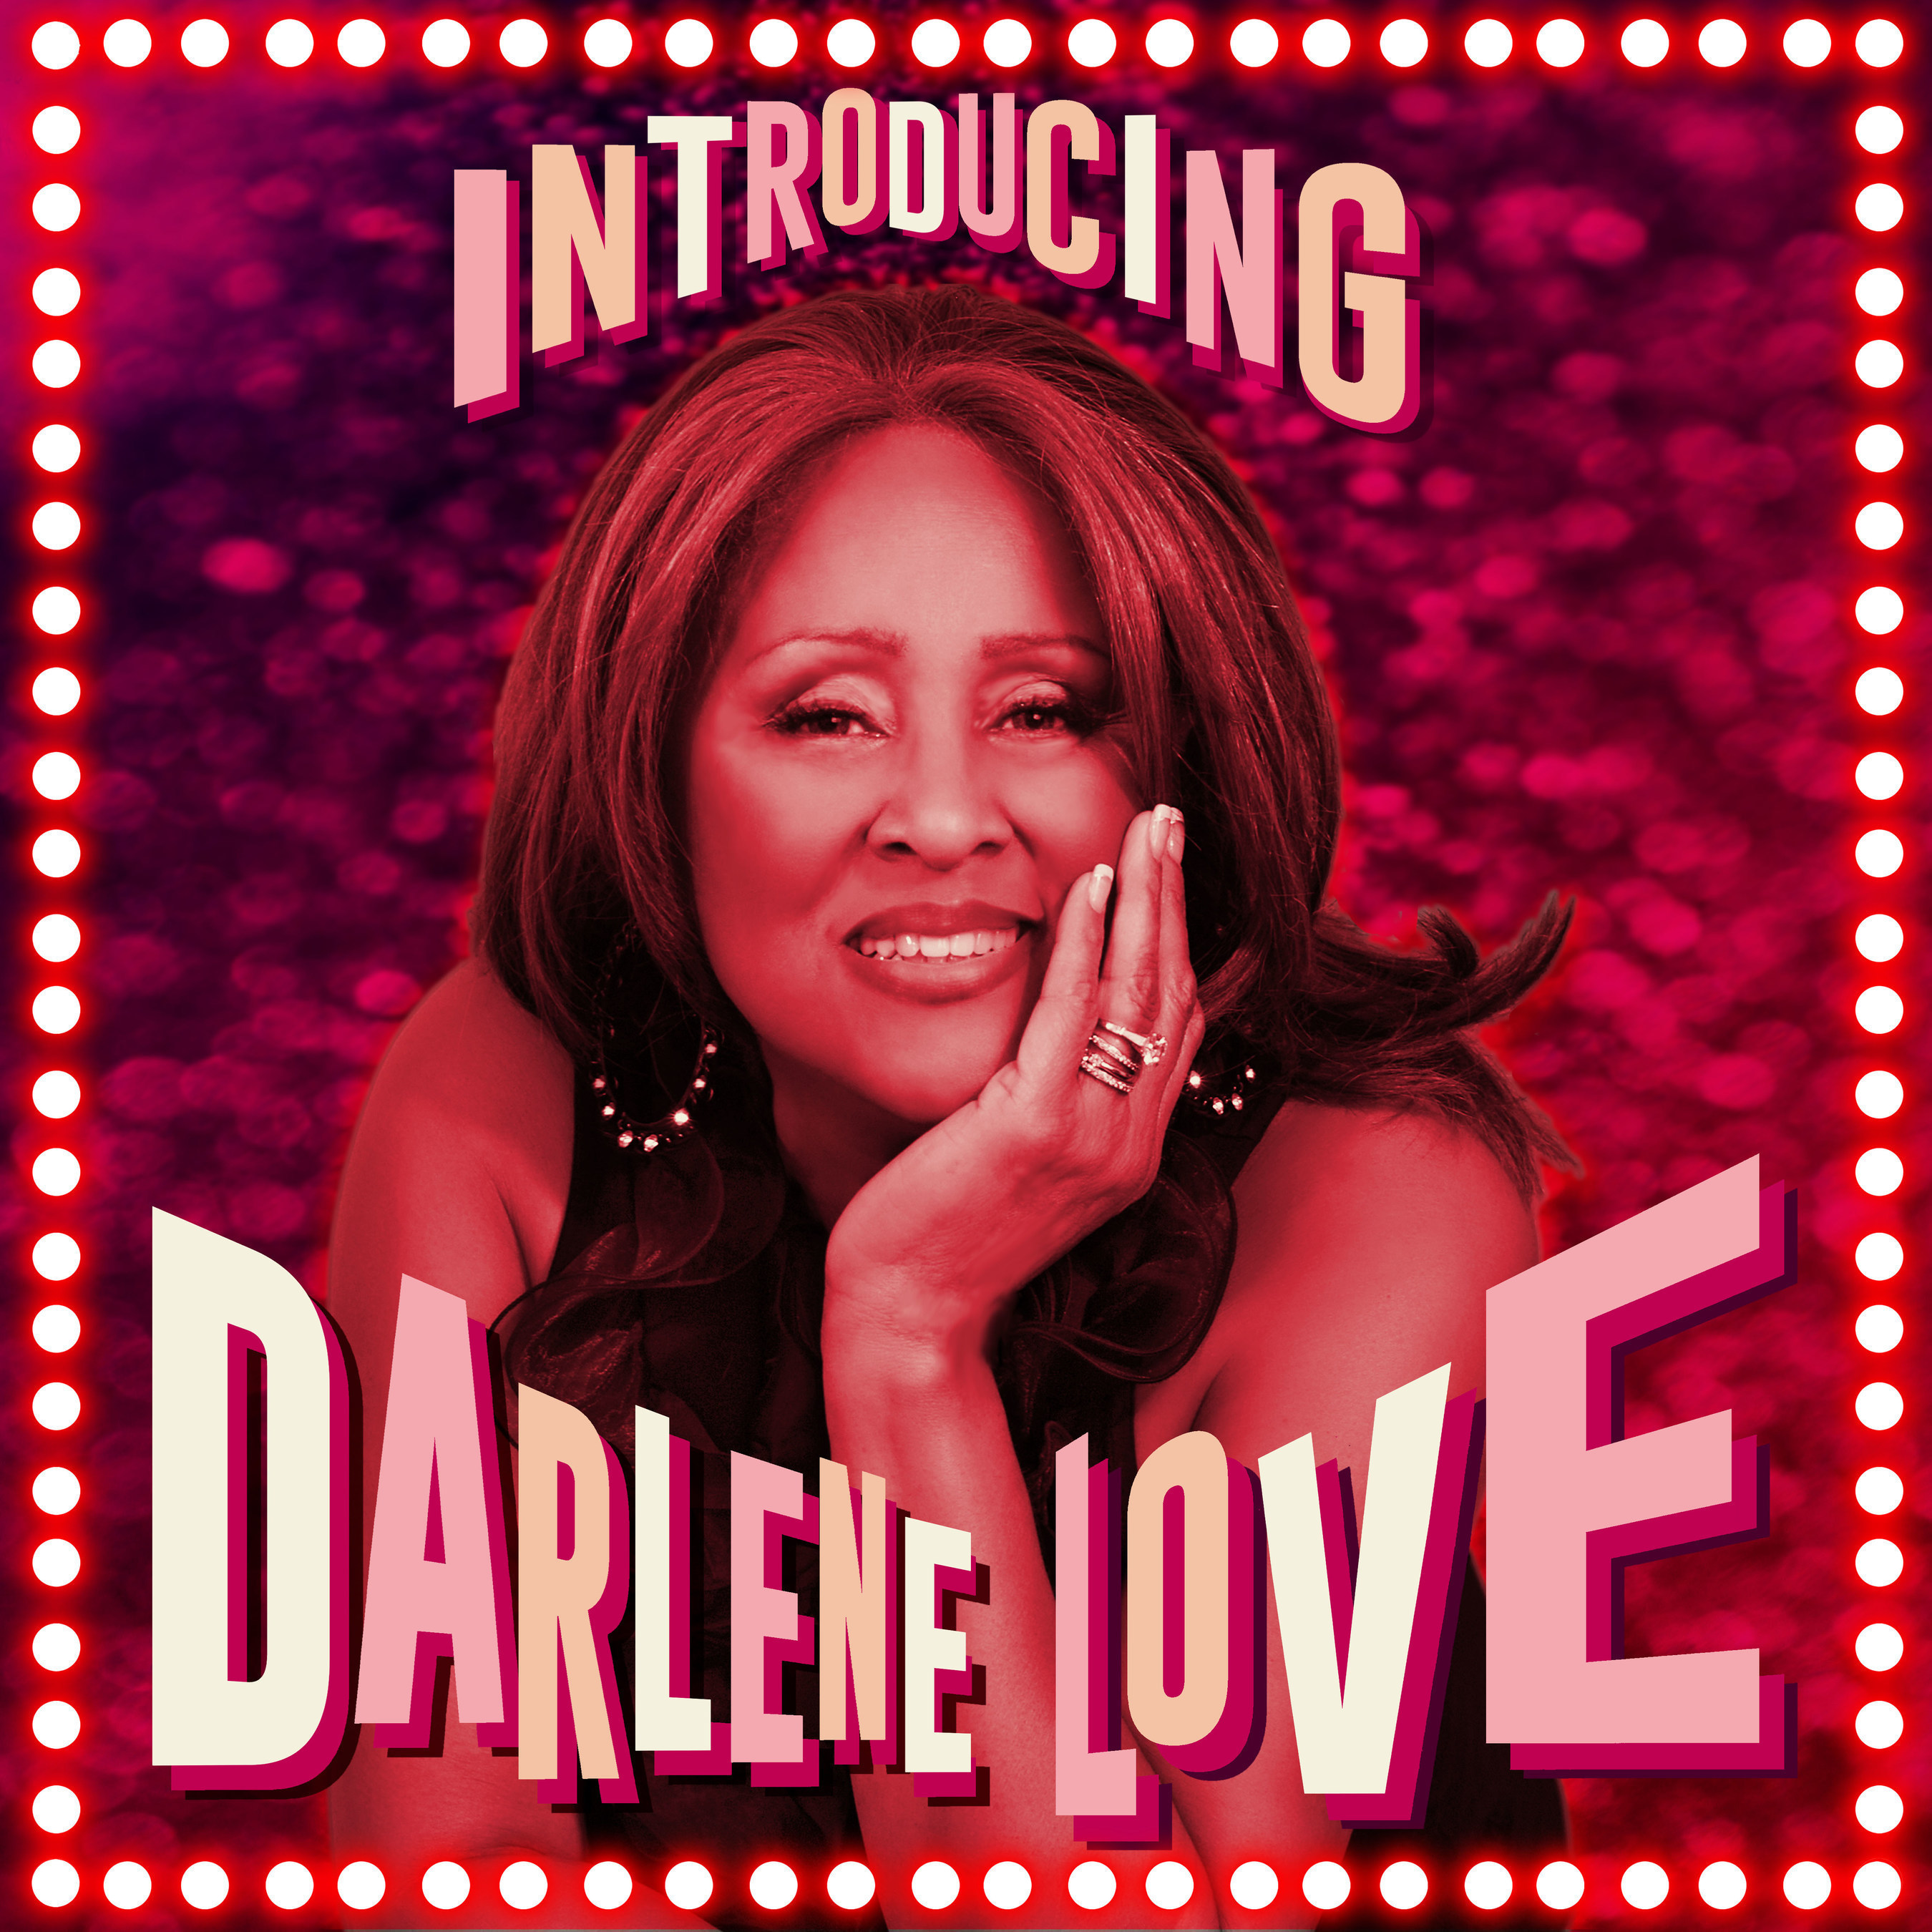 Long Awaited New Darlene Love Album 'Introducing Darlene Love' Available For Pre-Order Today